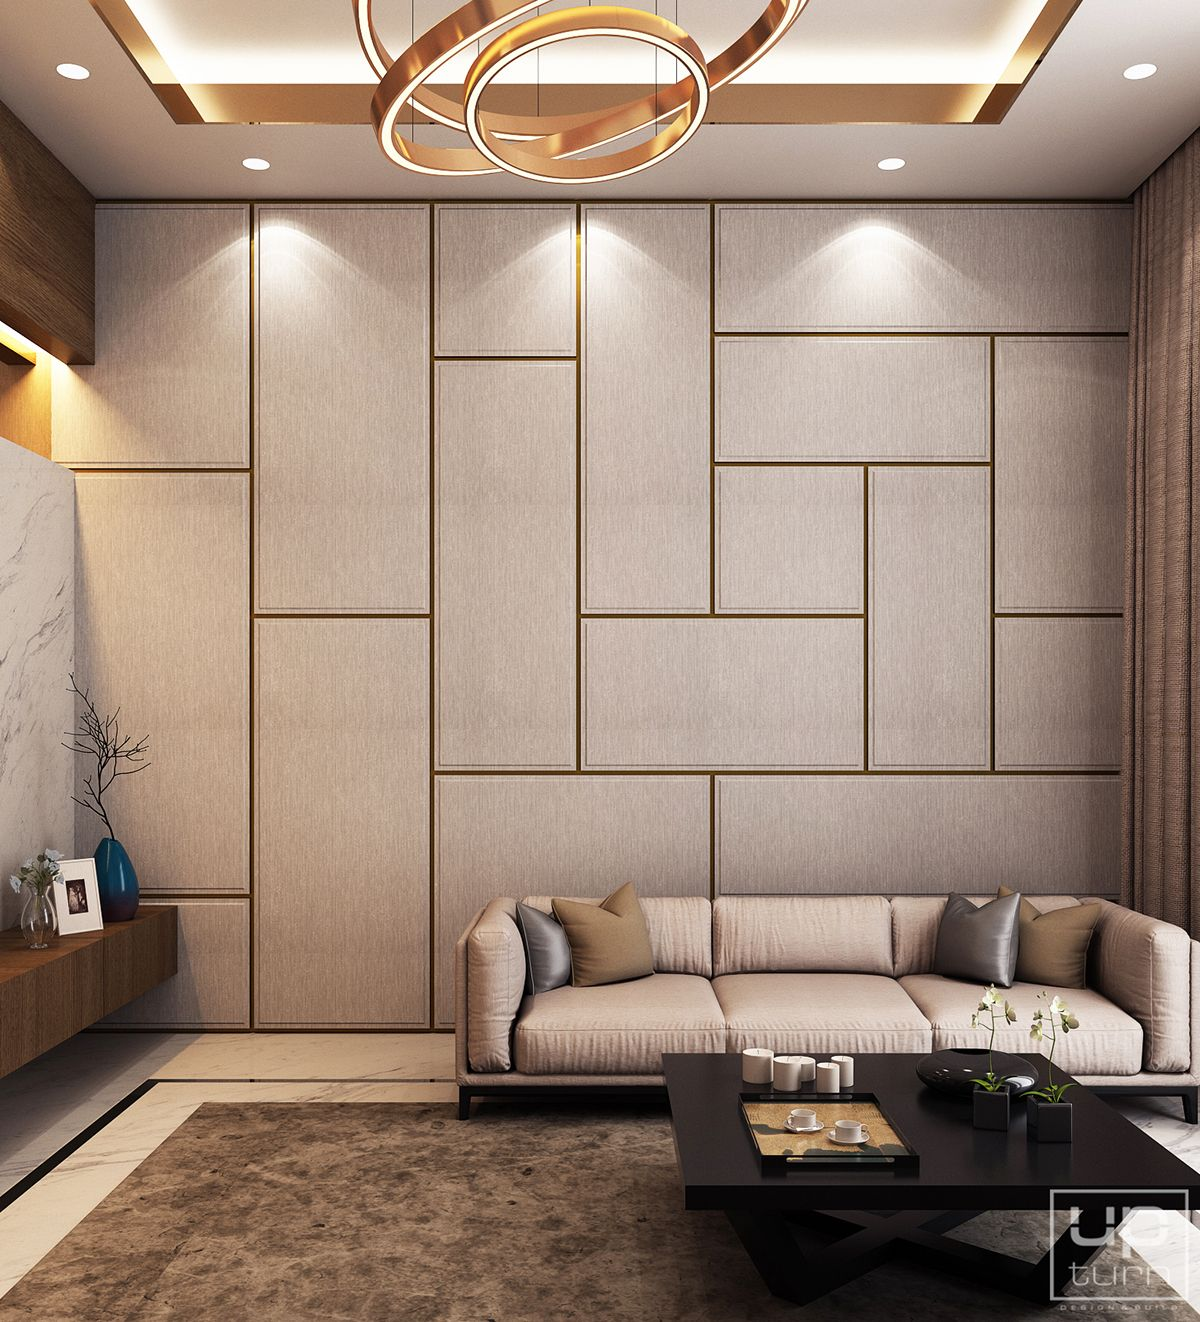 24 Luxury And Modern Home Office Designs: Luxury Modern Villa - Qatar On Behance In 2019